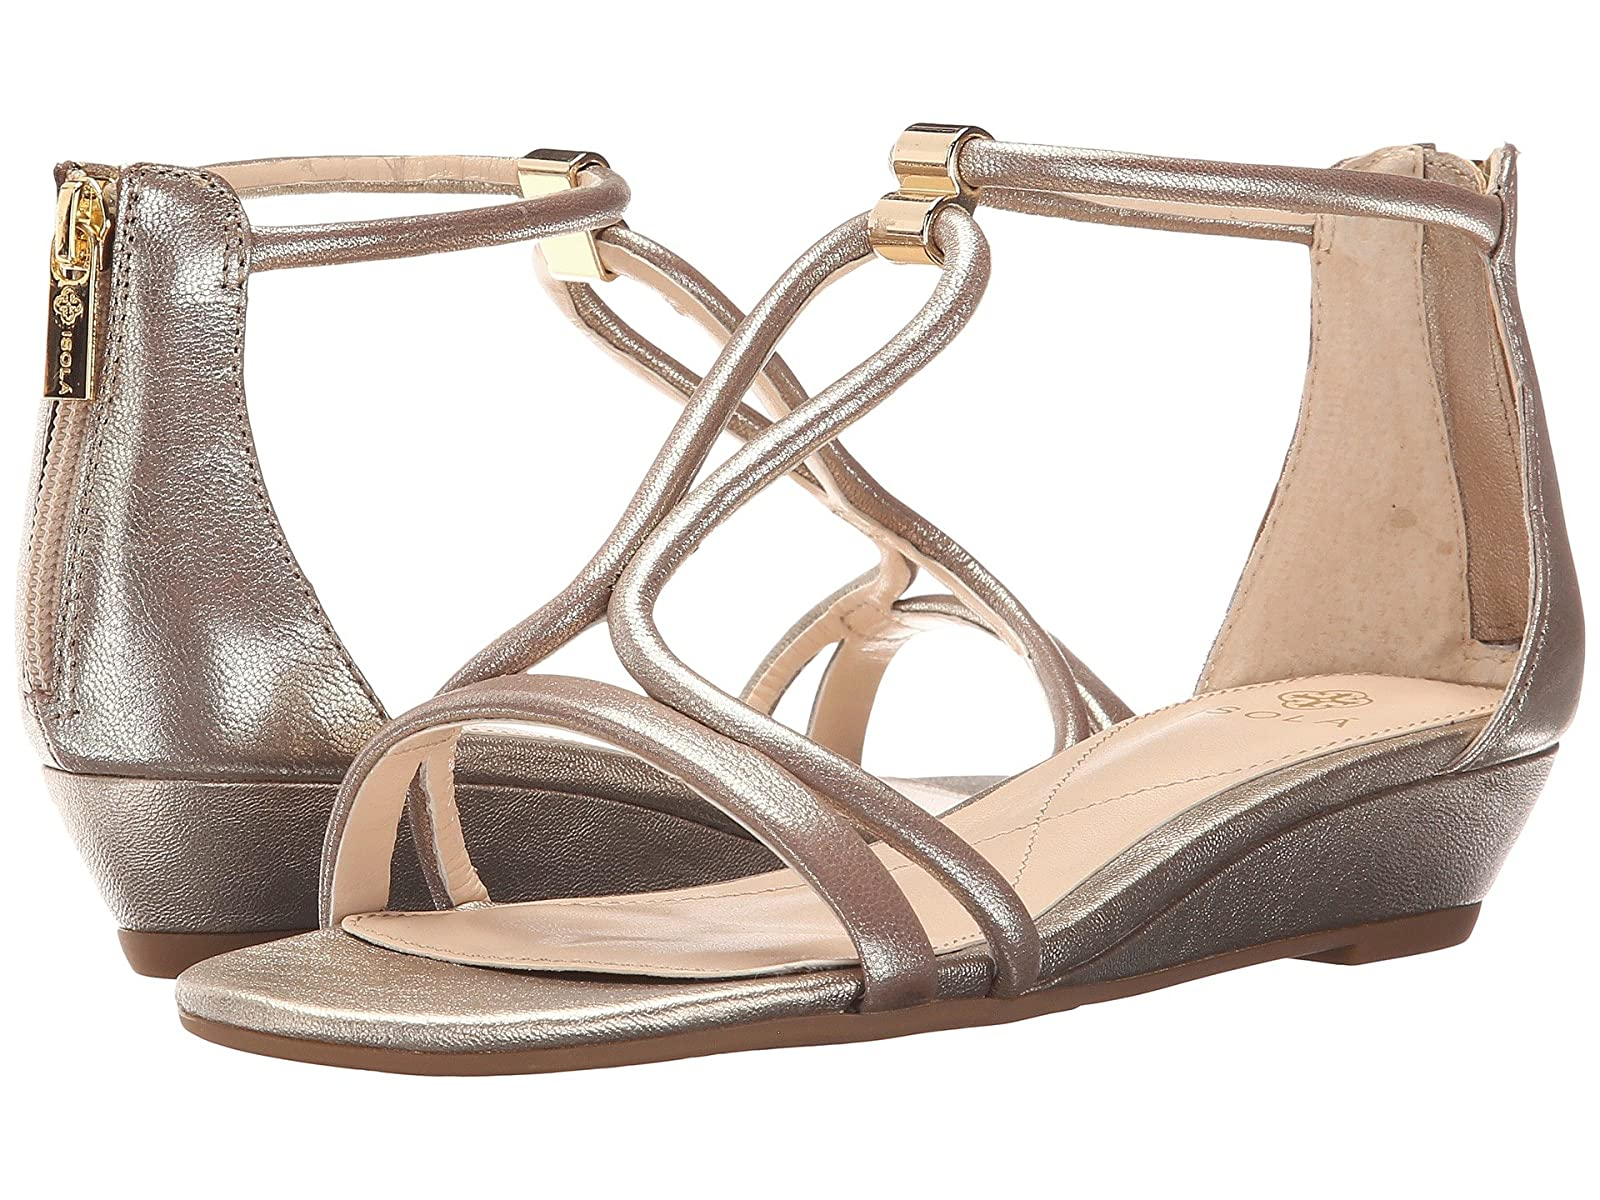 Isola ElinCheap and distinctive eye-catching shoes